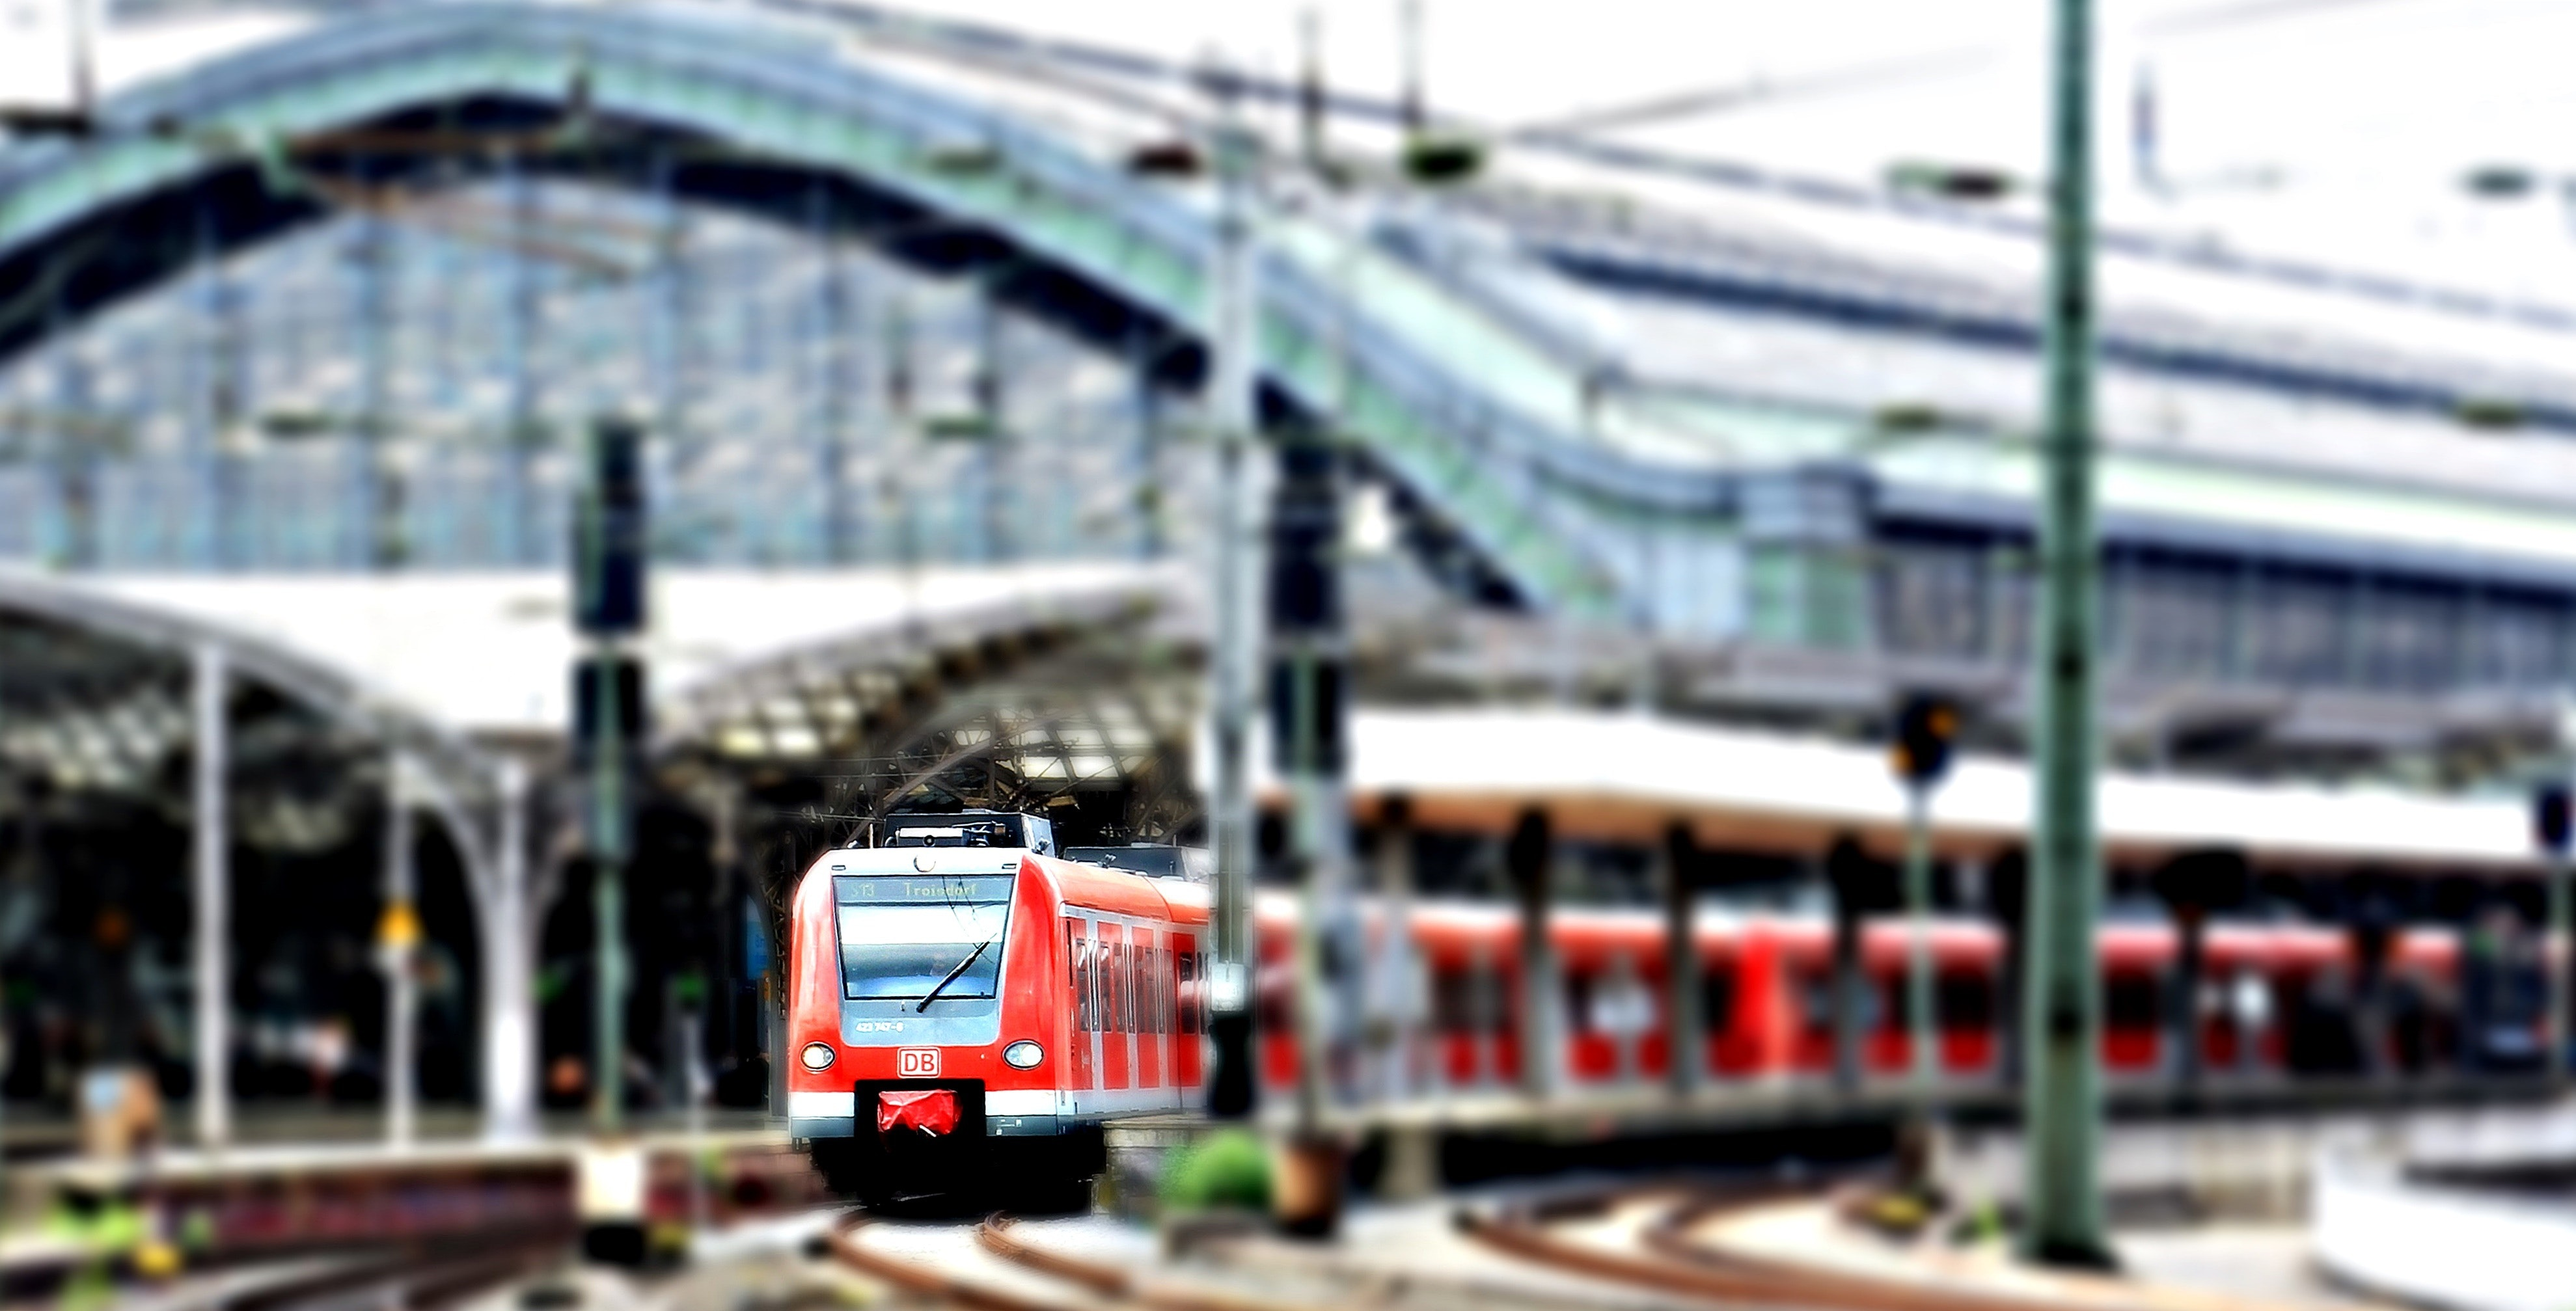 germany train, deutschebahn, bahn de, german railwaypass